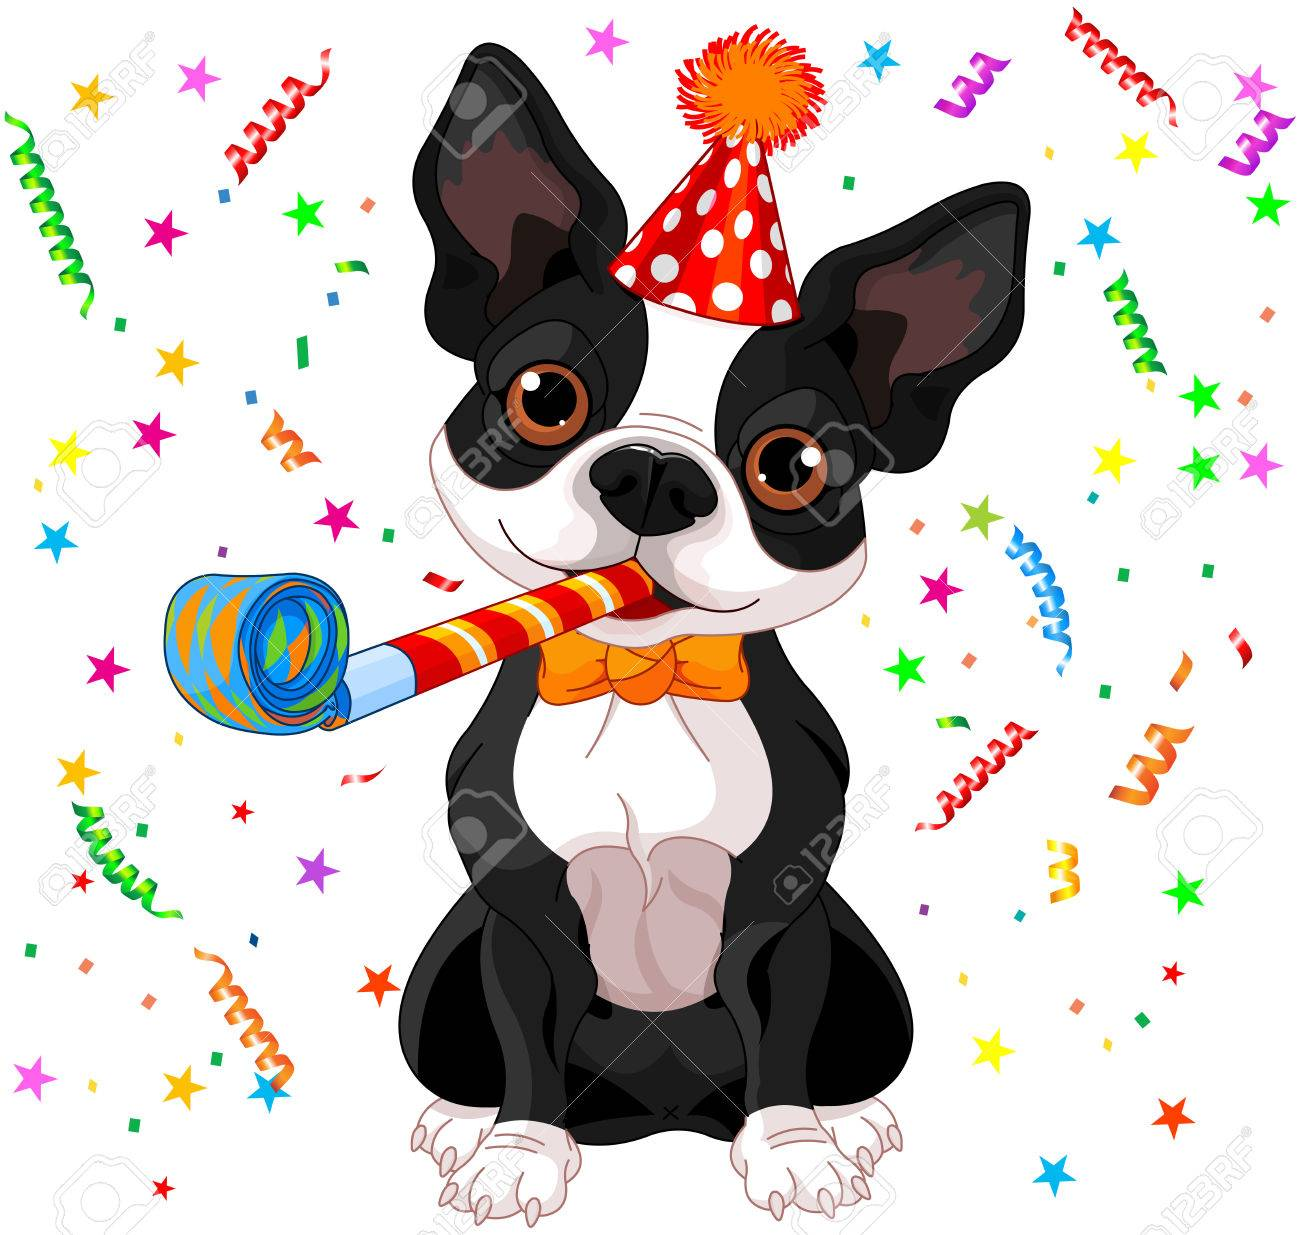 La longe: son utilité, son utilisation 35588778-illustration-of-cute-boston-terrier-celebrating